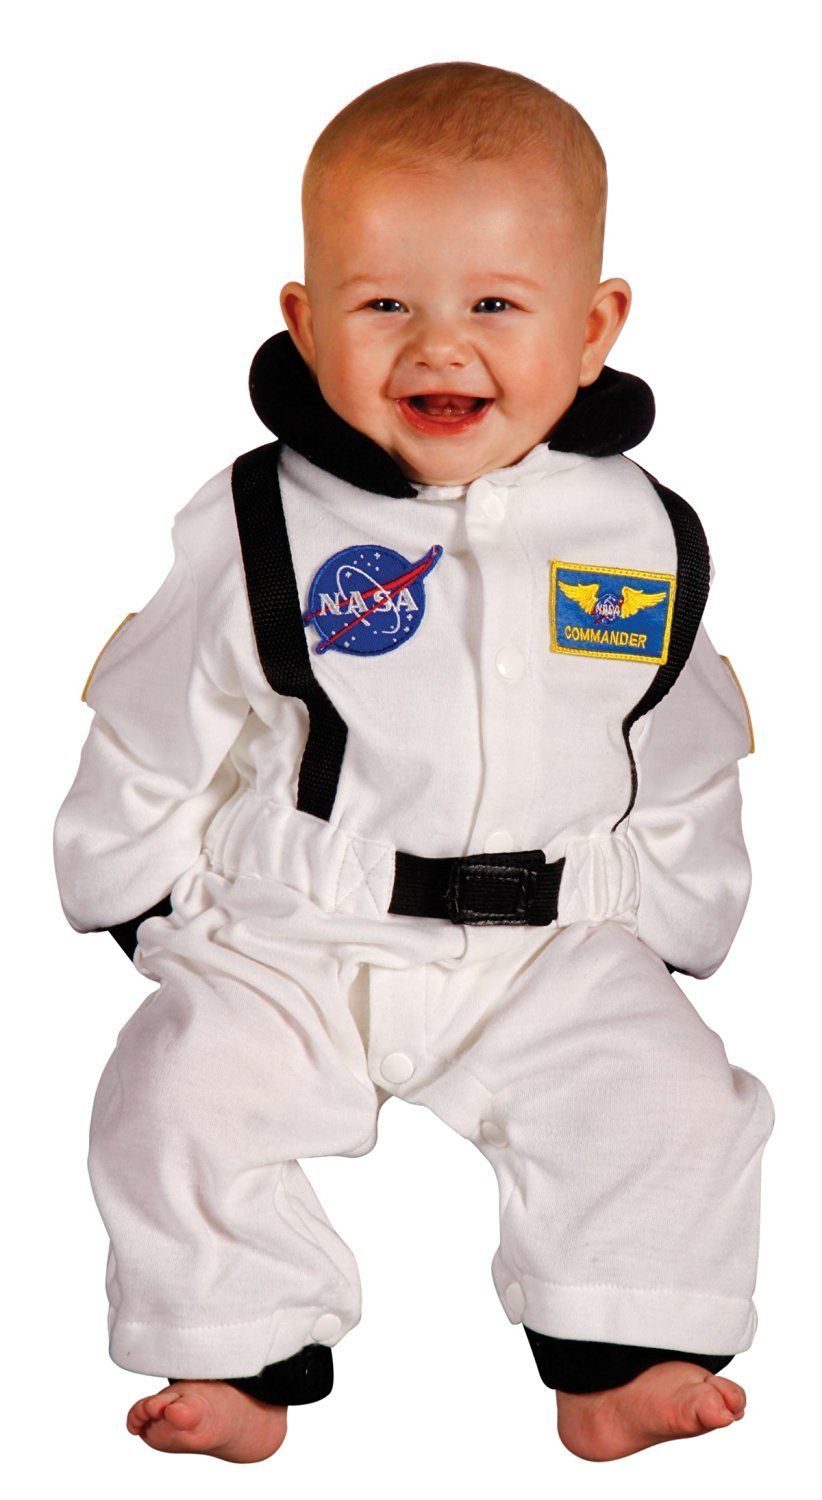 Aeromax Jr. Astronaut Suit with NASA patches and diaper snaps WHITE Size 6  sc 1 st  Pinterest & Aeromax Jr. Astronaut Suit with NASA patches and diaper snaps WHITE ...